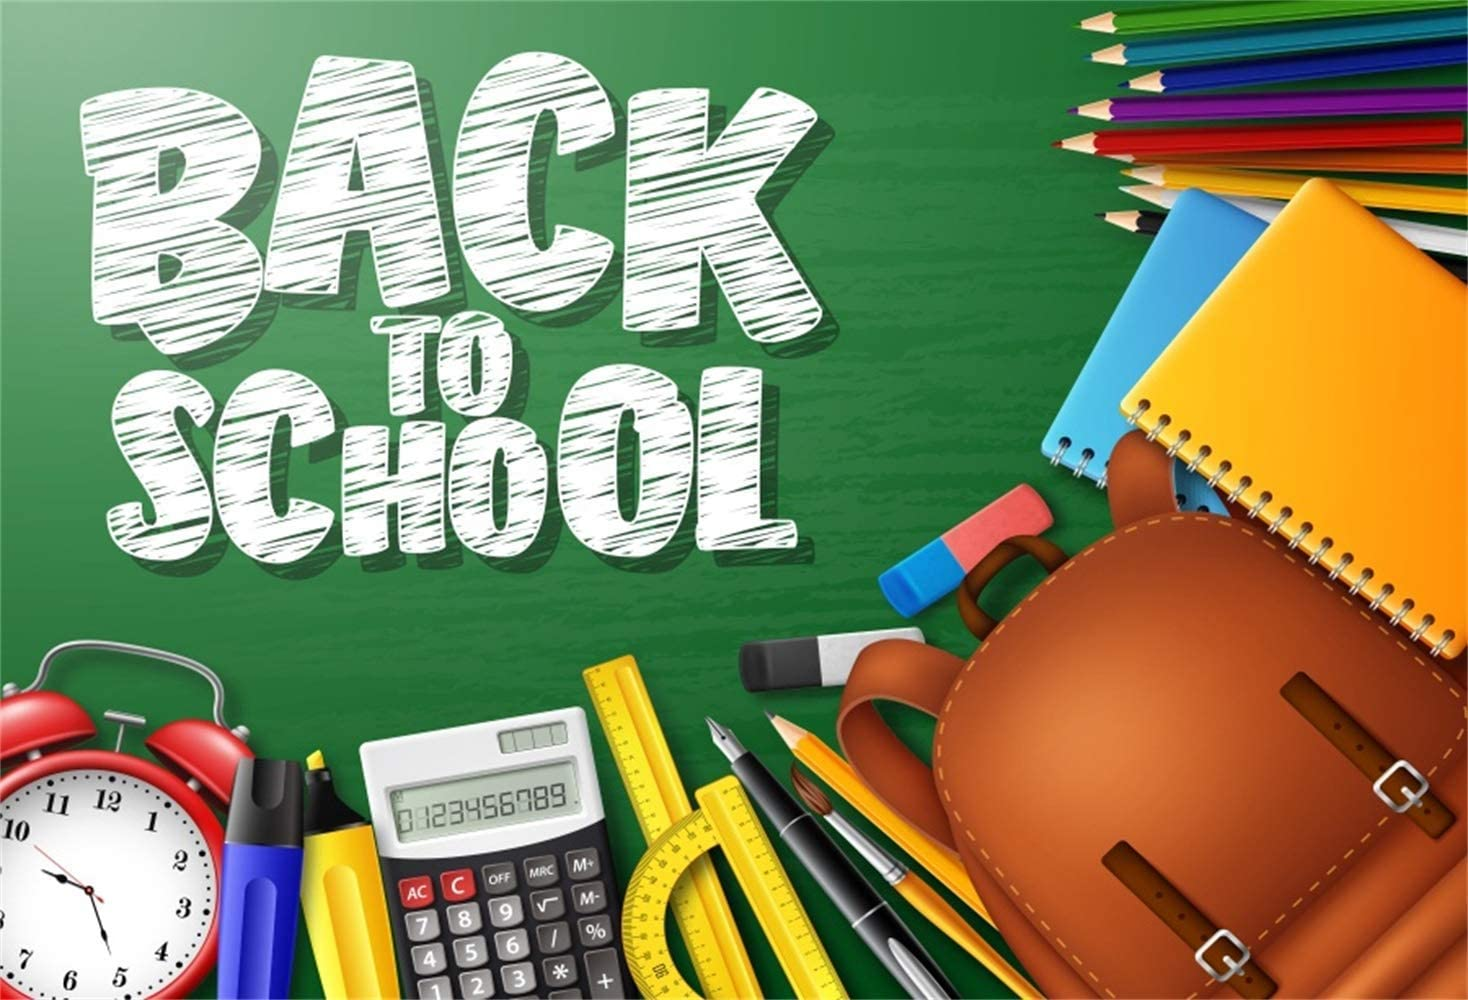 5x3ft Photography Background Back to School Black White Stripes Letters Photo Backdrops Schoolbags Blackboard Learning Tools Photo Backgrounds Students Children Photo Shooting Props